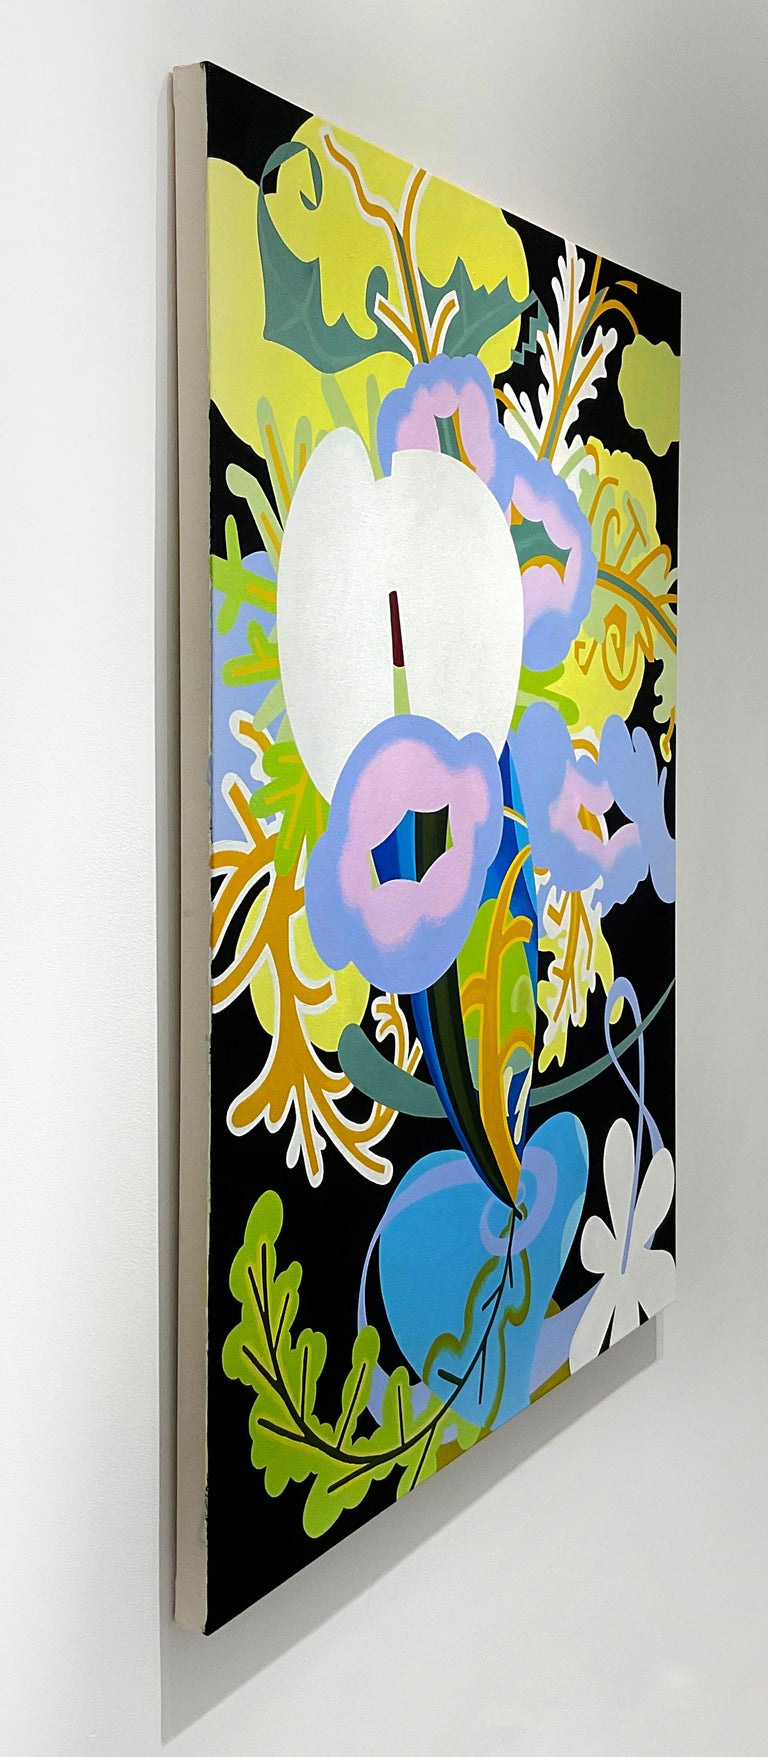 Pop art inspired abstract still life painting of periwinkle blue and pastel pink flowers against lime green and white leaf details, contrasted against a bold black background